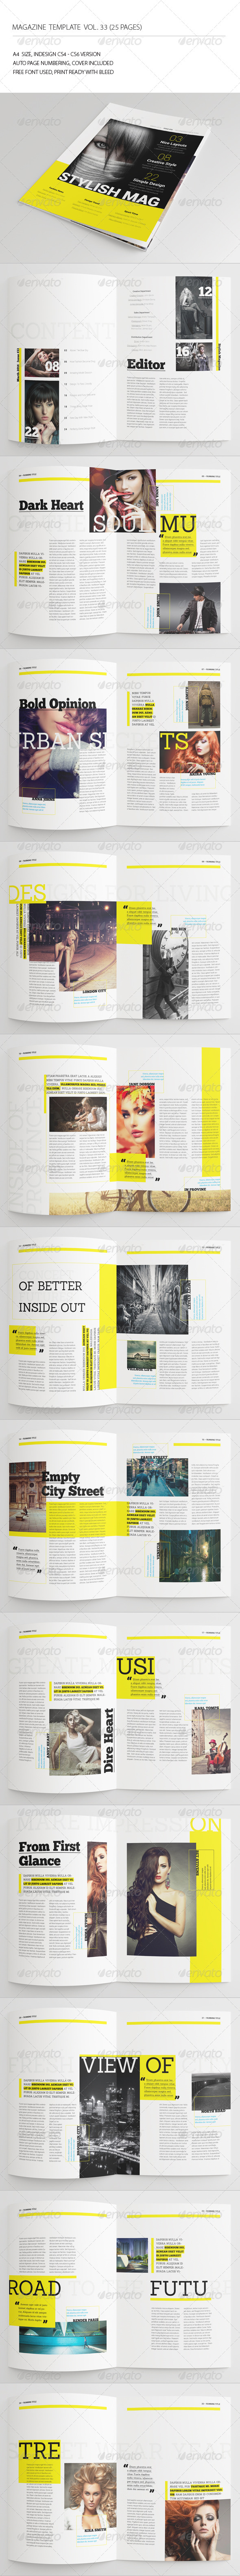 25 Pages Urban Magazine Vol33 - Magazines Print Templates